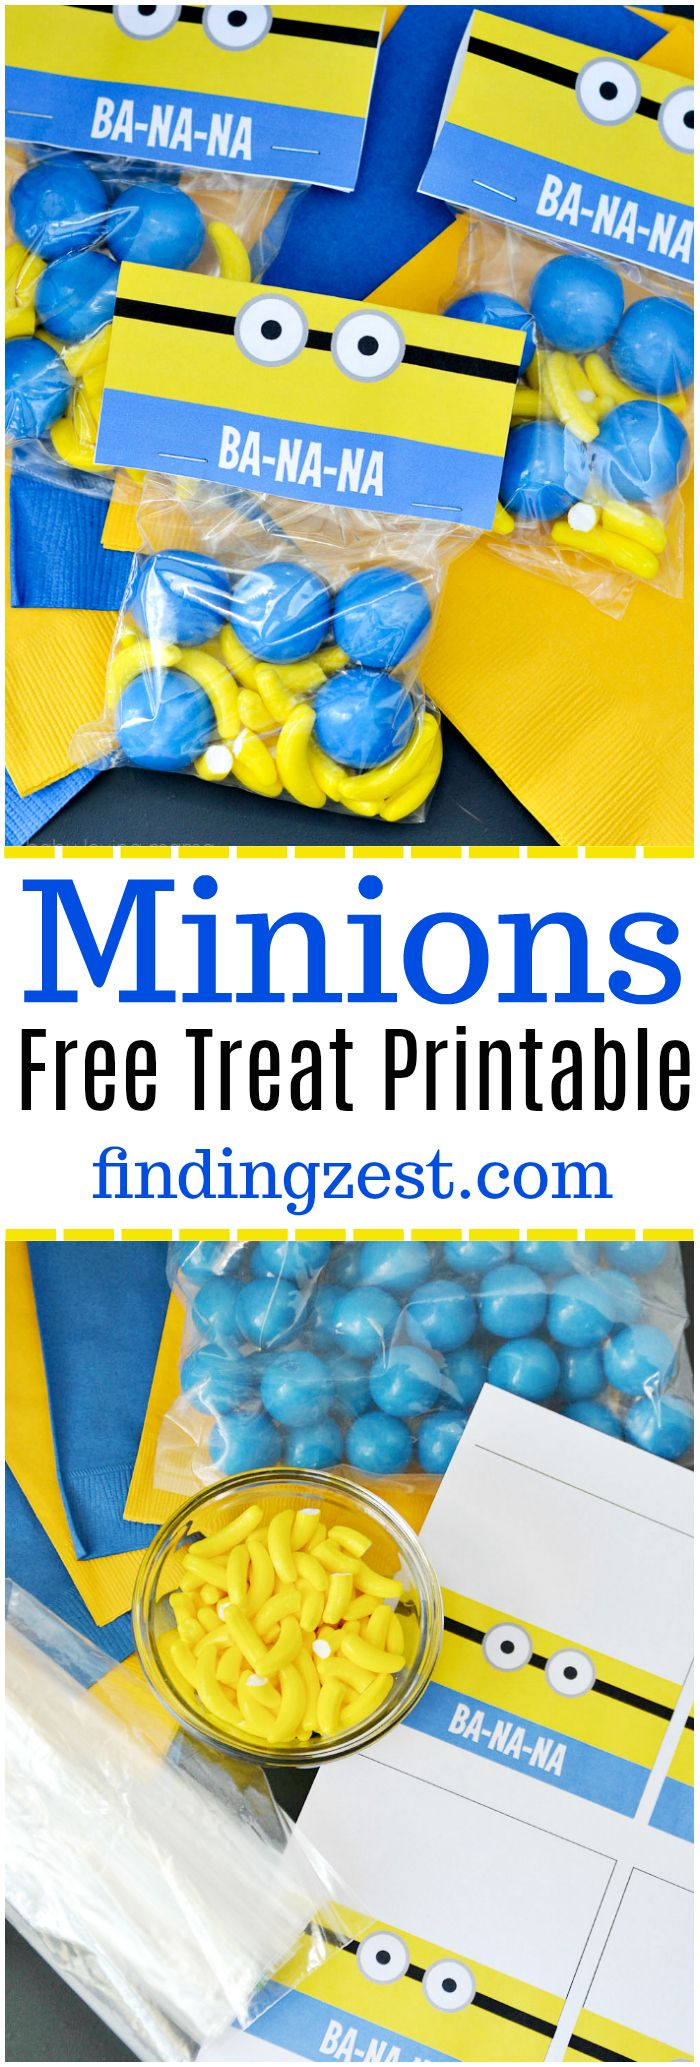 Download this Minions Free Treat Printable to create a fun DIY snack bag for a Despicable Me or Minions birthday party! Makes a great kids party favor!